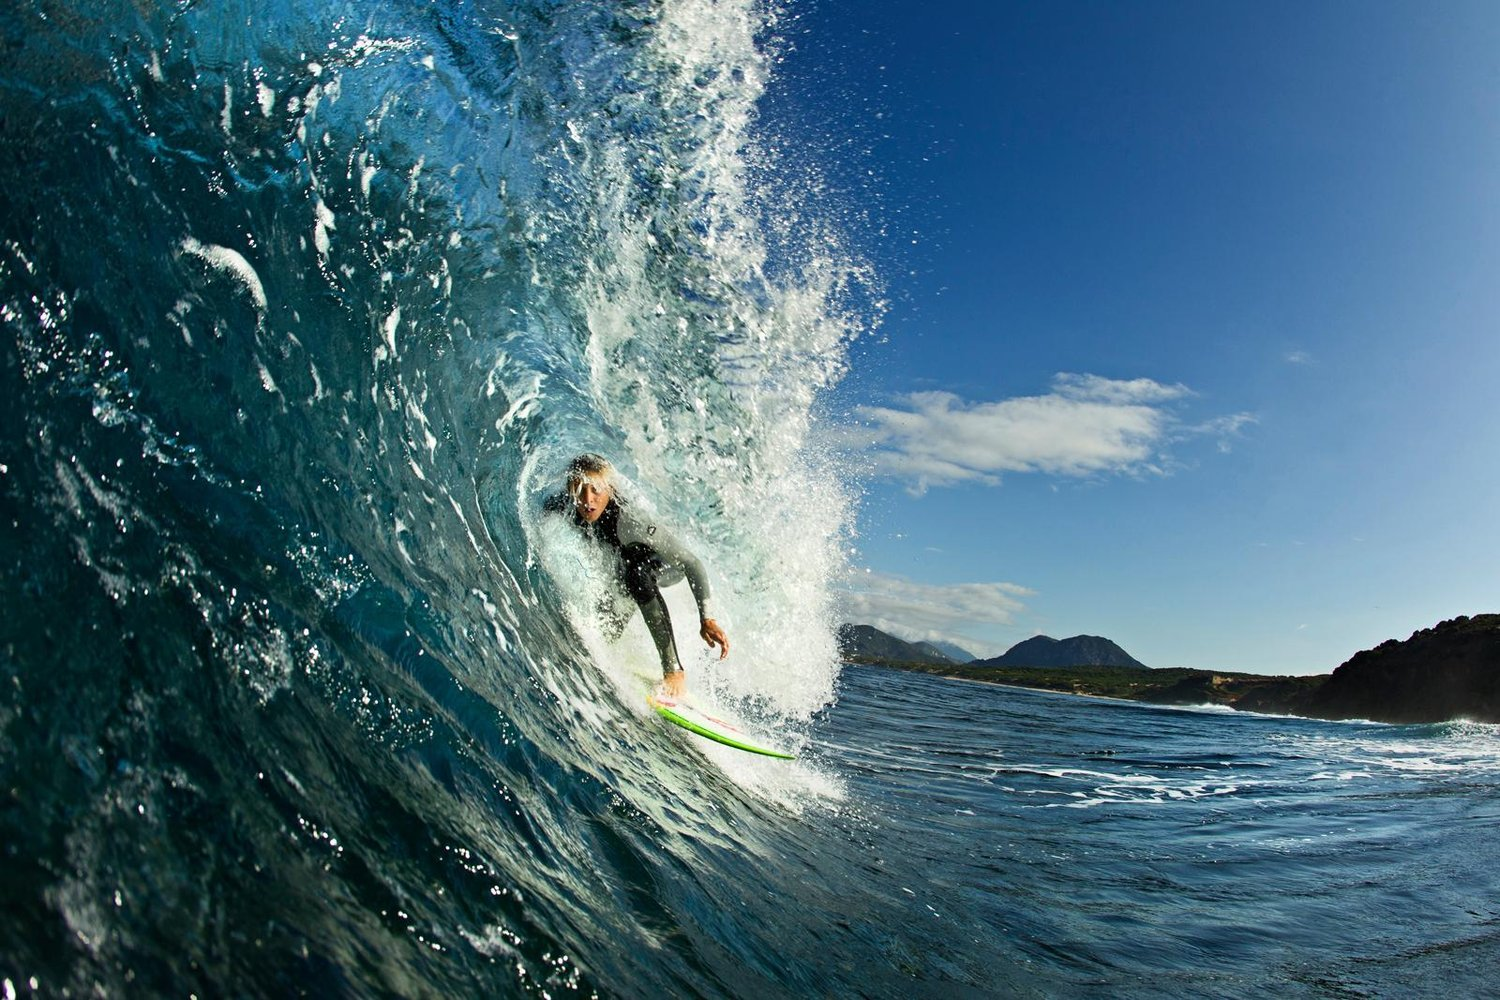 Sardinia Surfing: Lear to Surf in Sardinia, get one Surf Course